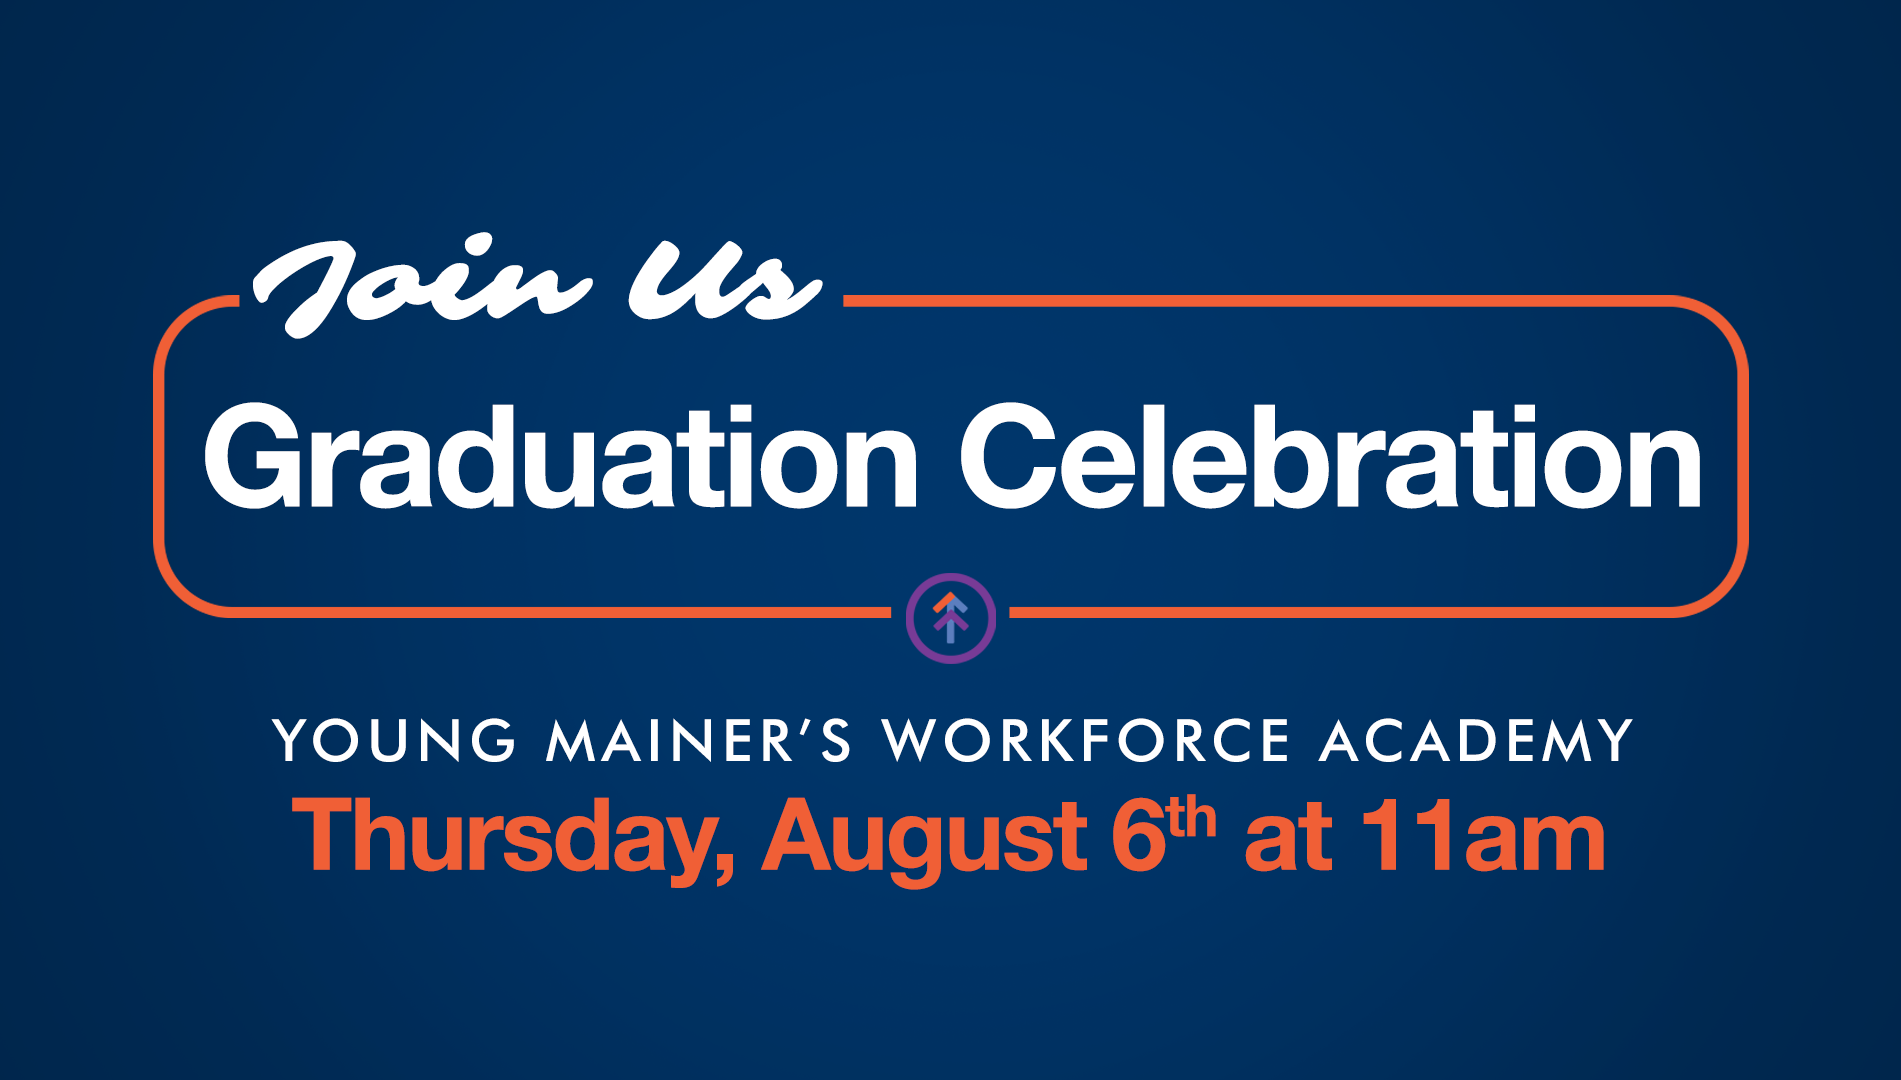 EMDC's Youth Workforce Academy graduation and launch of Second Academy set for Aug. 6